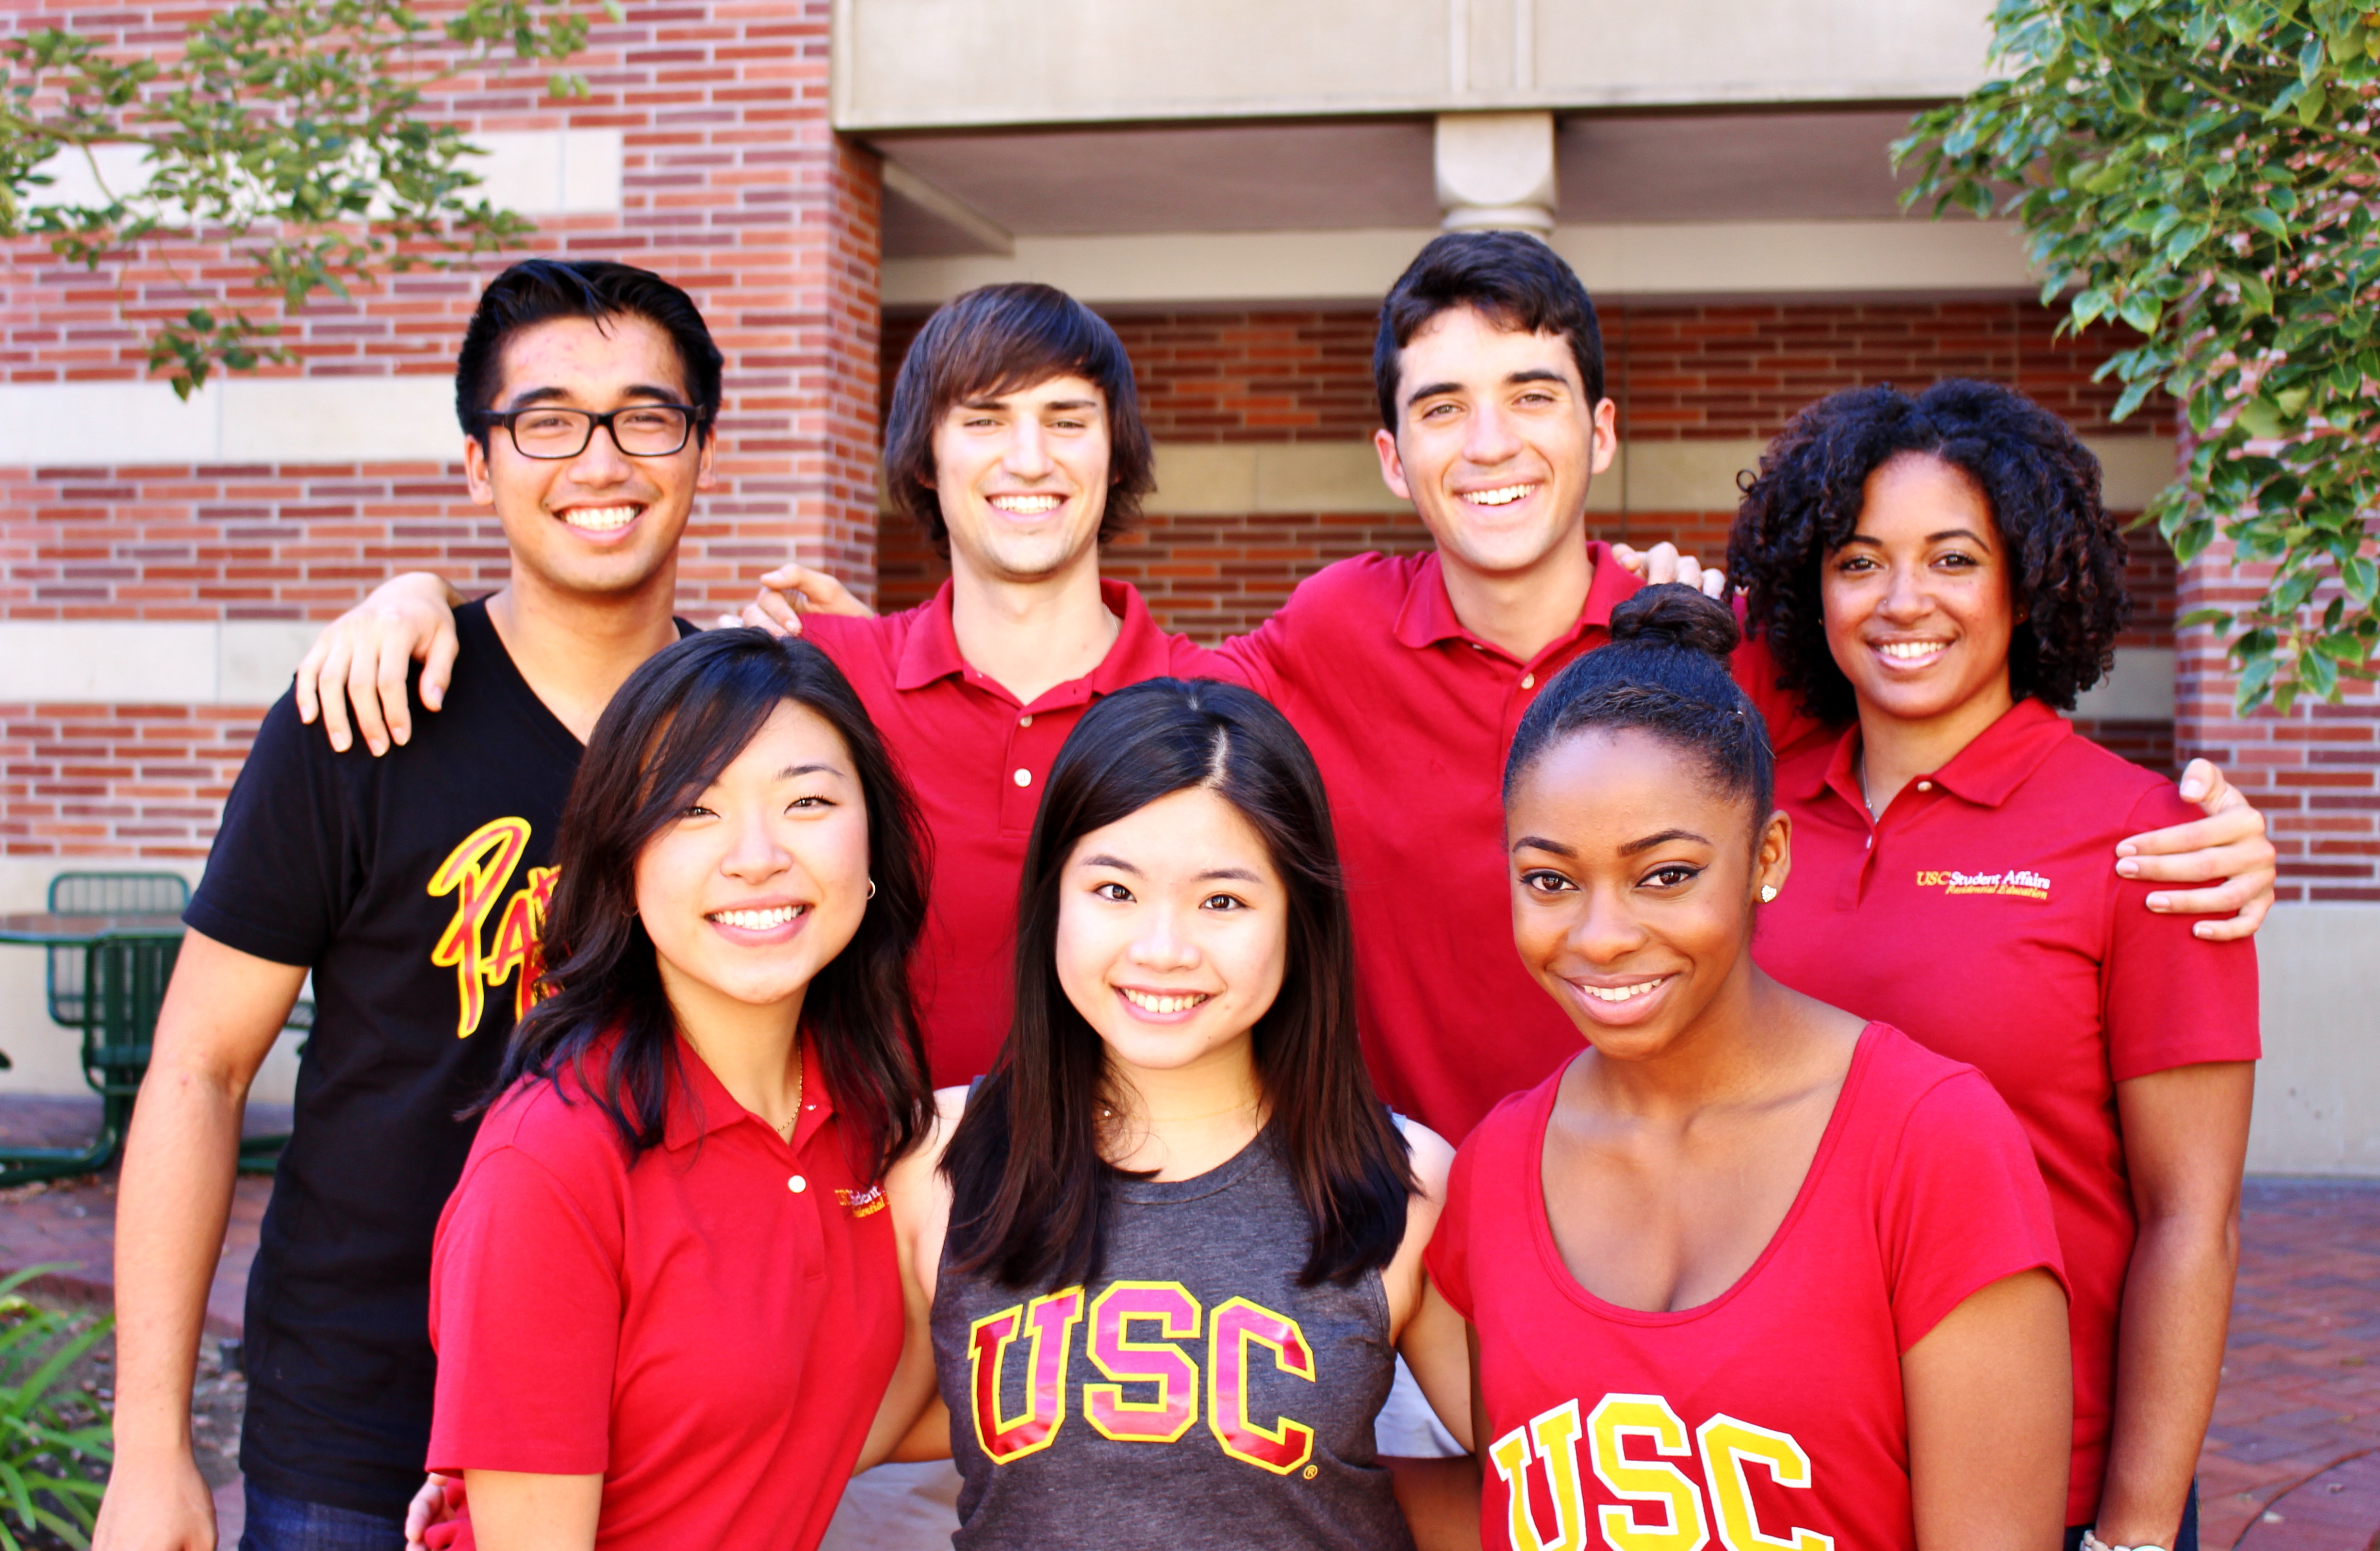 7 Jobs USC Students Should Consider | USC Student Affairs